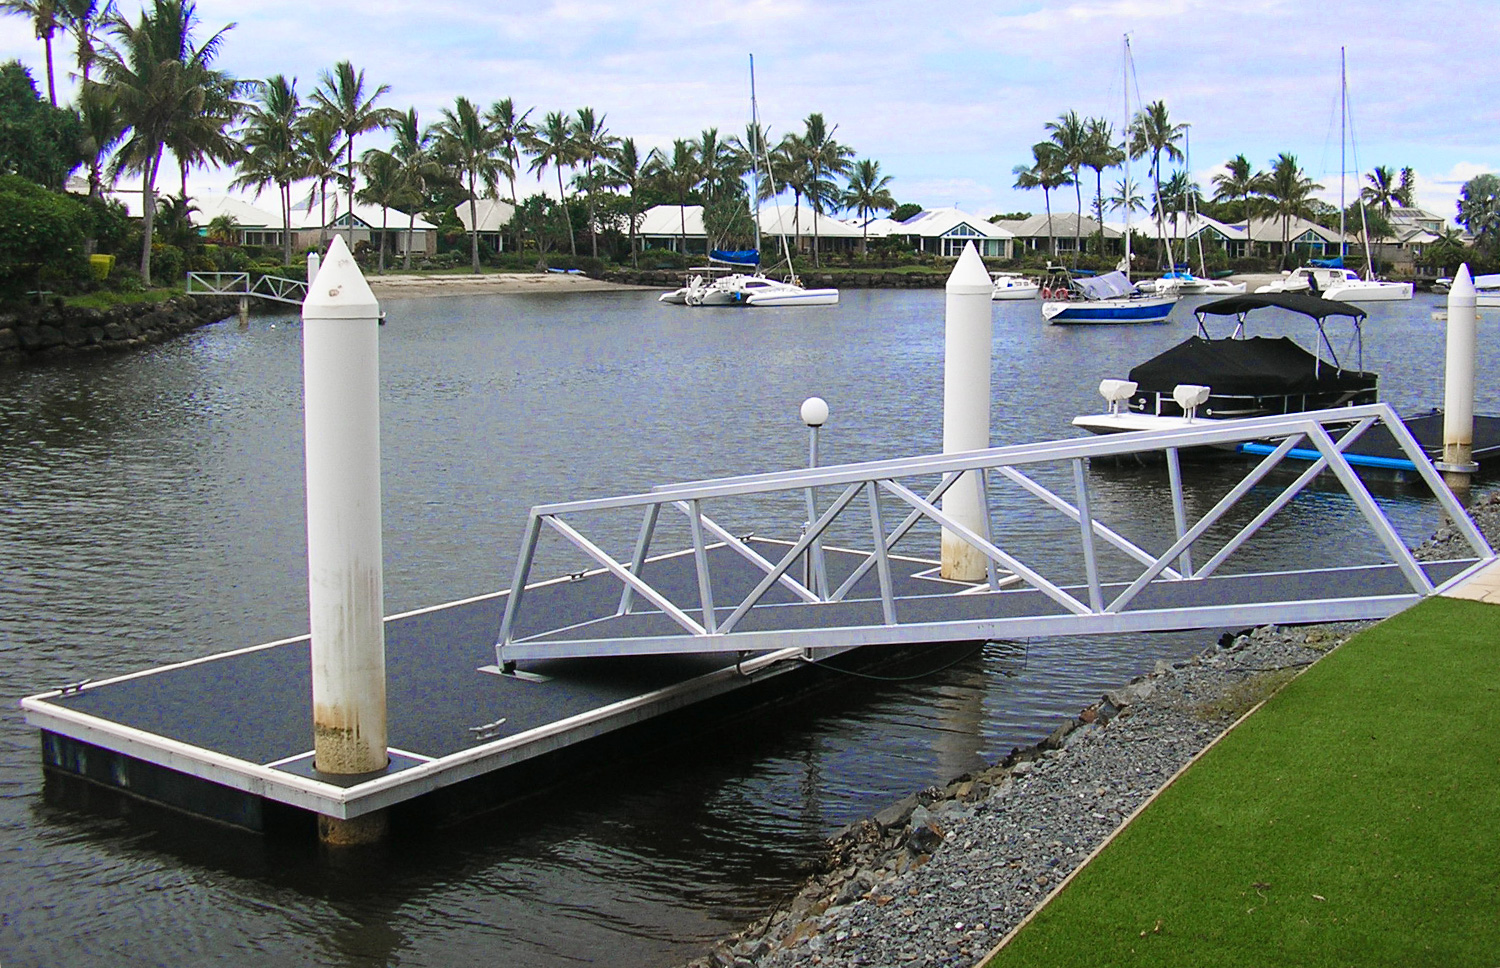 Pontoon vs Jetty – What's the Difference